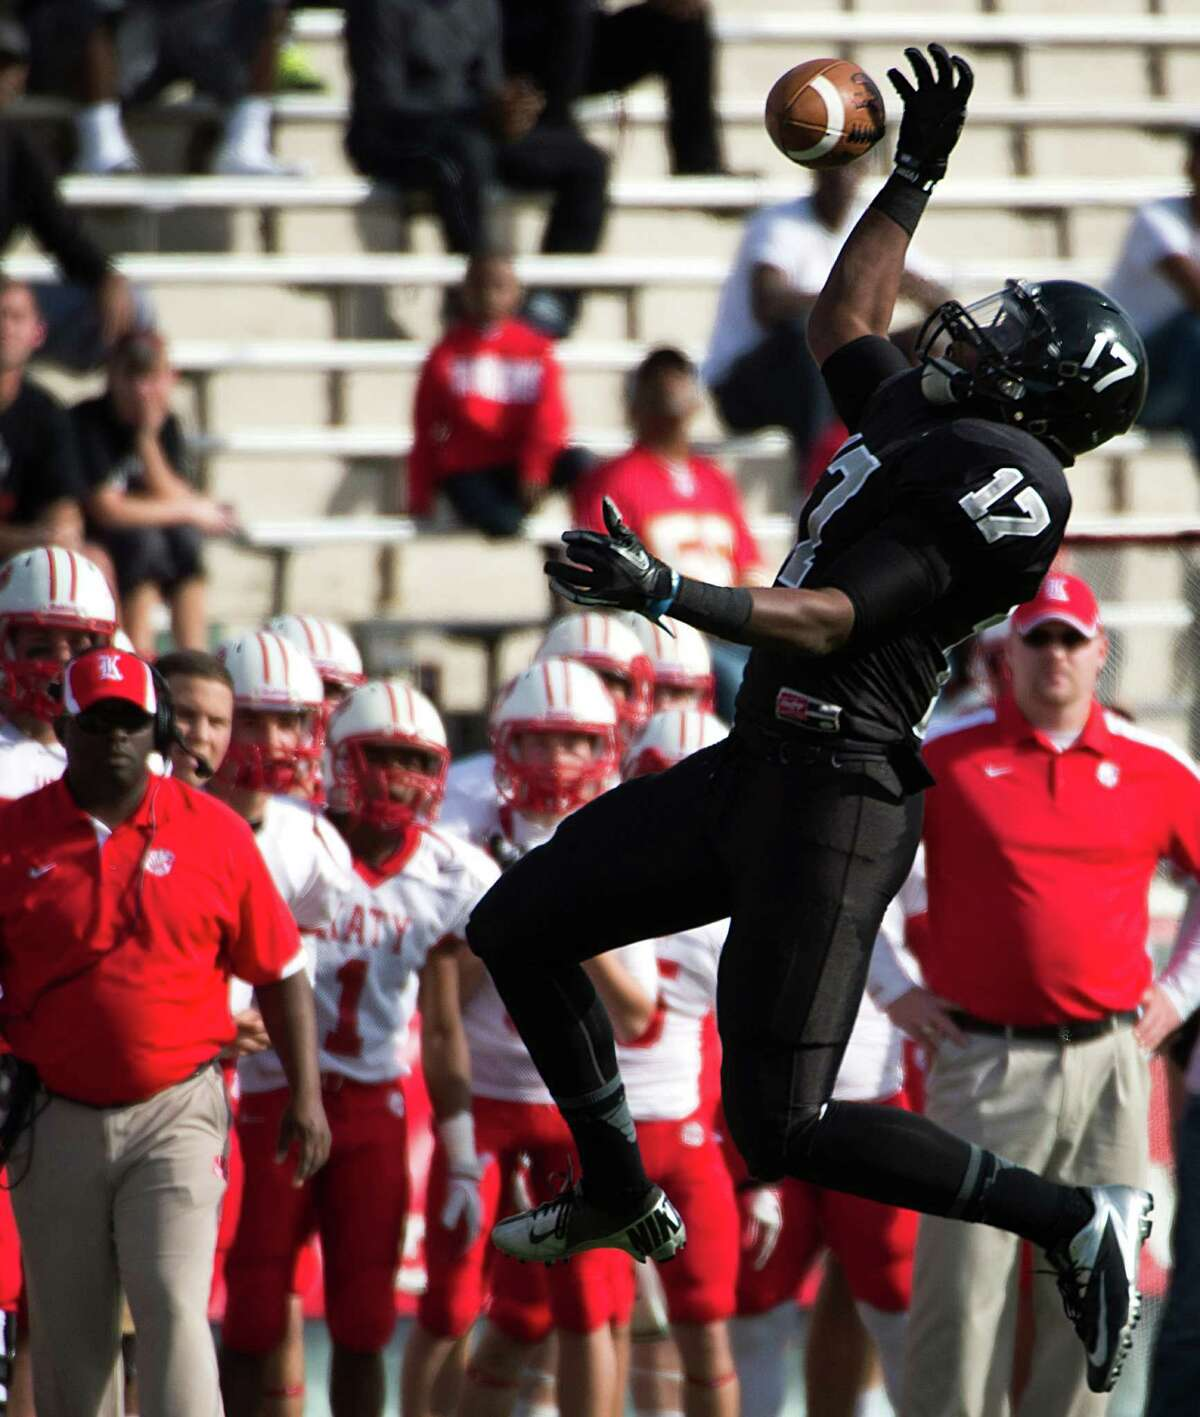 Cibolo Steele wide receiver Thaddeous Thompson (17) tries to make a one-handed catch against Katy during the first quarter in a Class 5A Division II state high school football semifinal game at Floyd Casey Stadium on Saturday, Dec. 15, 2012, in Waco. ( Smiley N. Pool / Houston Chronicle )